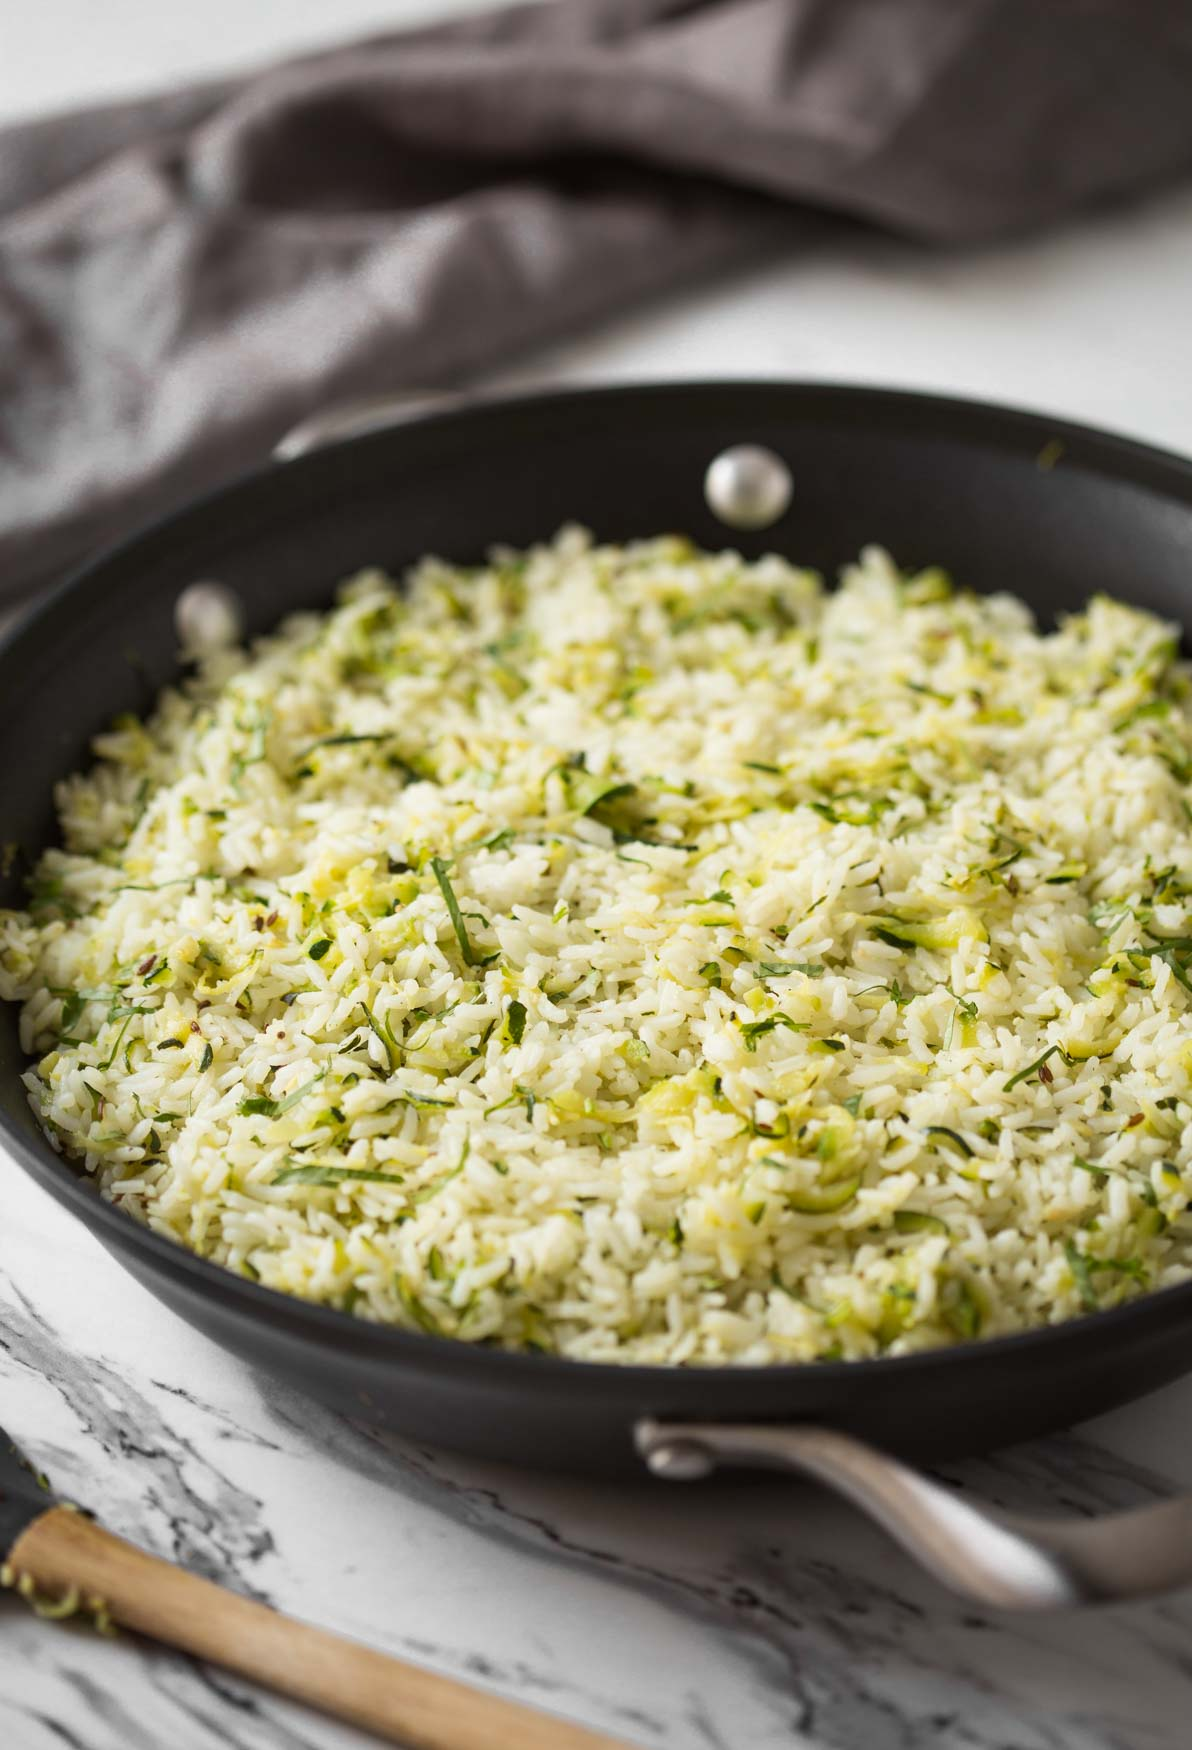 This garlic flavored zucchini with rice is a perfect side dish is ready in under 30 minutes.